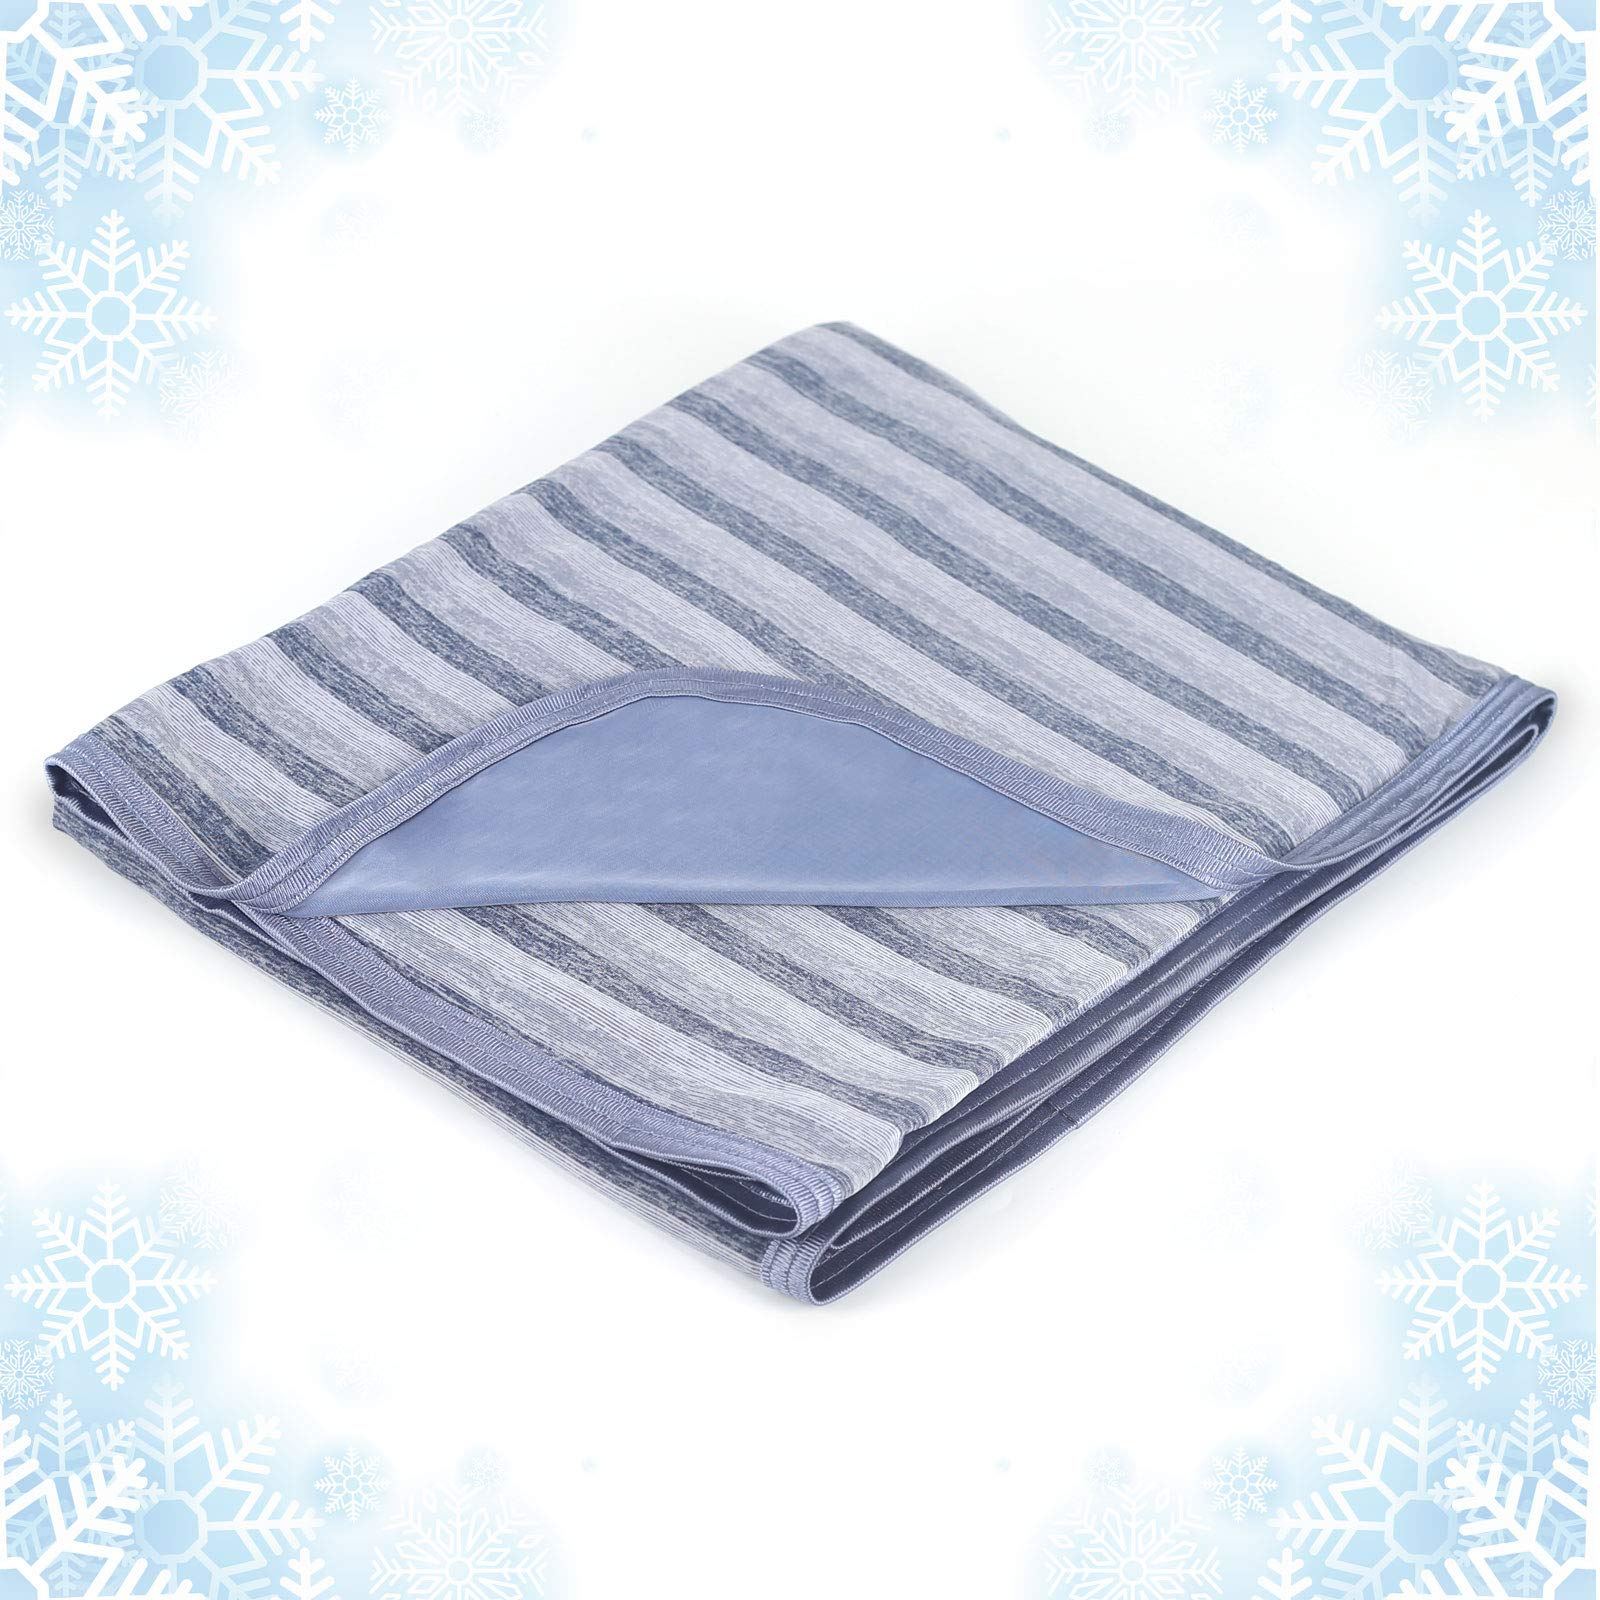 Cooling Blanket with Double Sided Cold,Lightweight Breathable Twin/Full Size Summer Blankets for Bed,Cool Tech Transfer Heat to Keep Adults, Children Cool for Hot Sleepers Night Sweats,with Travel Bag